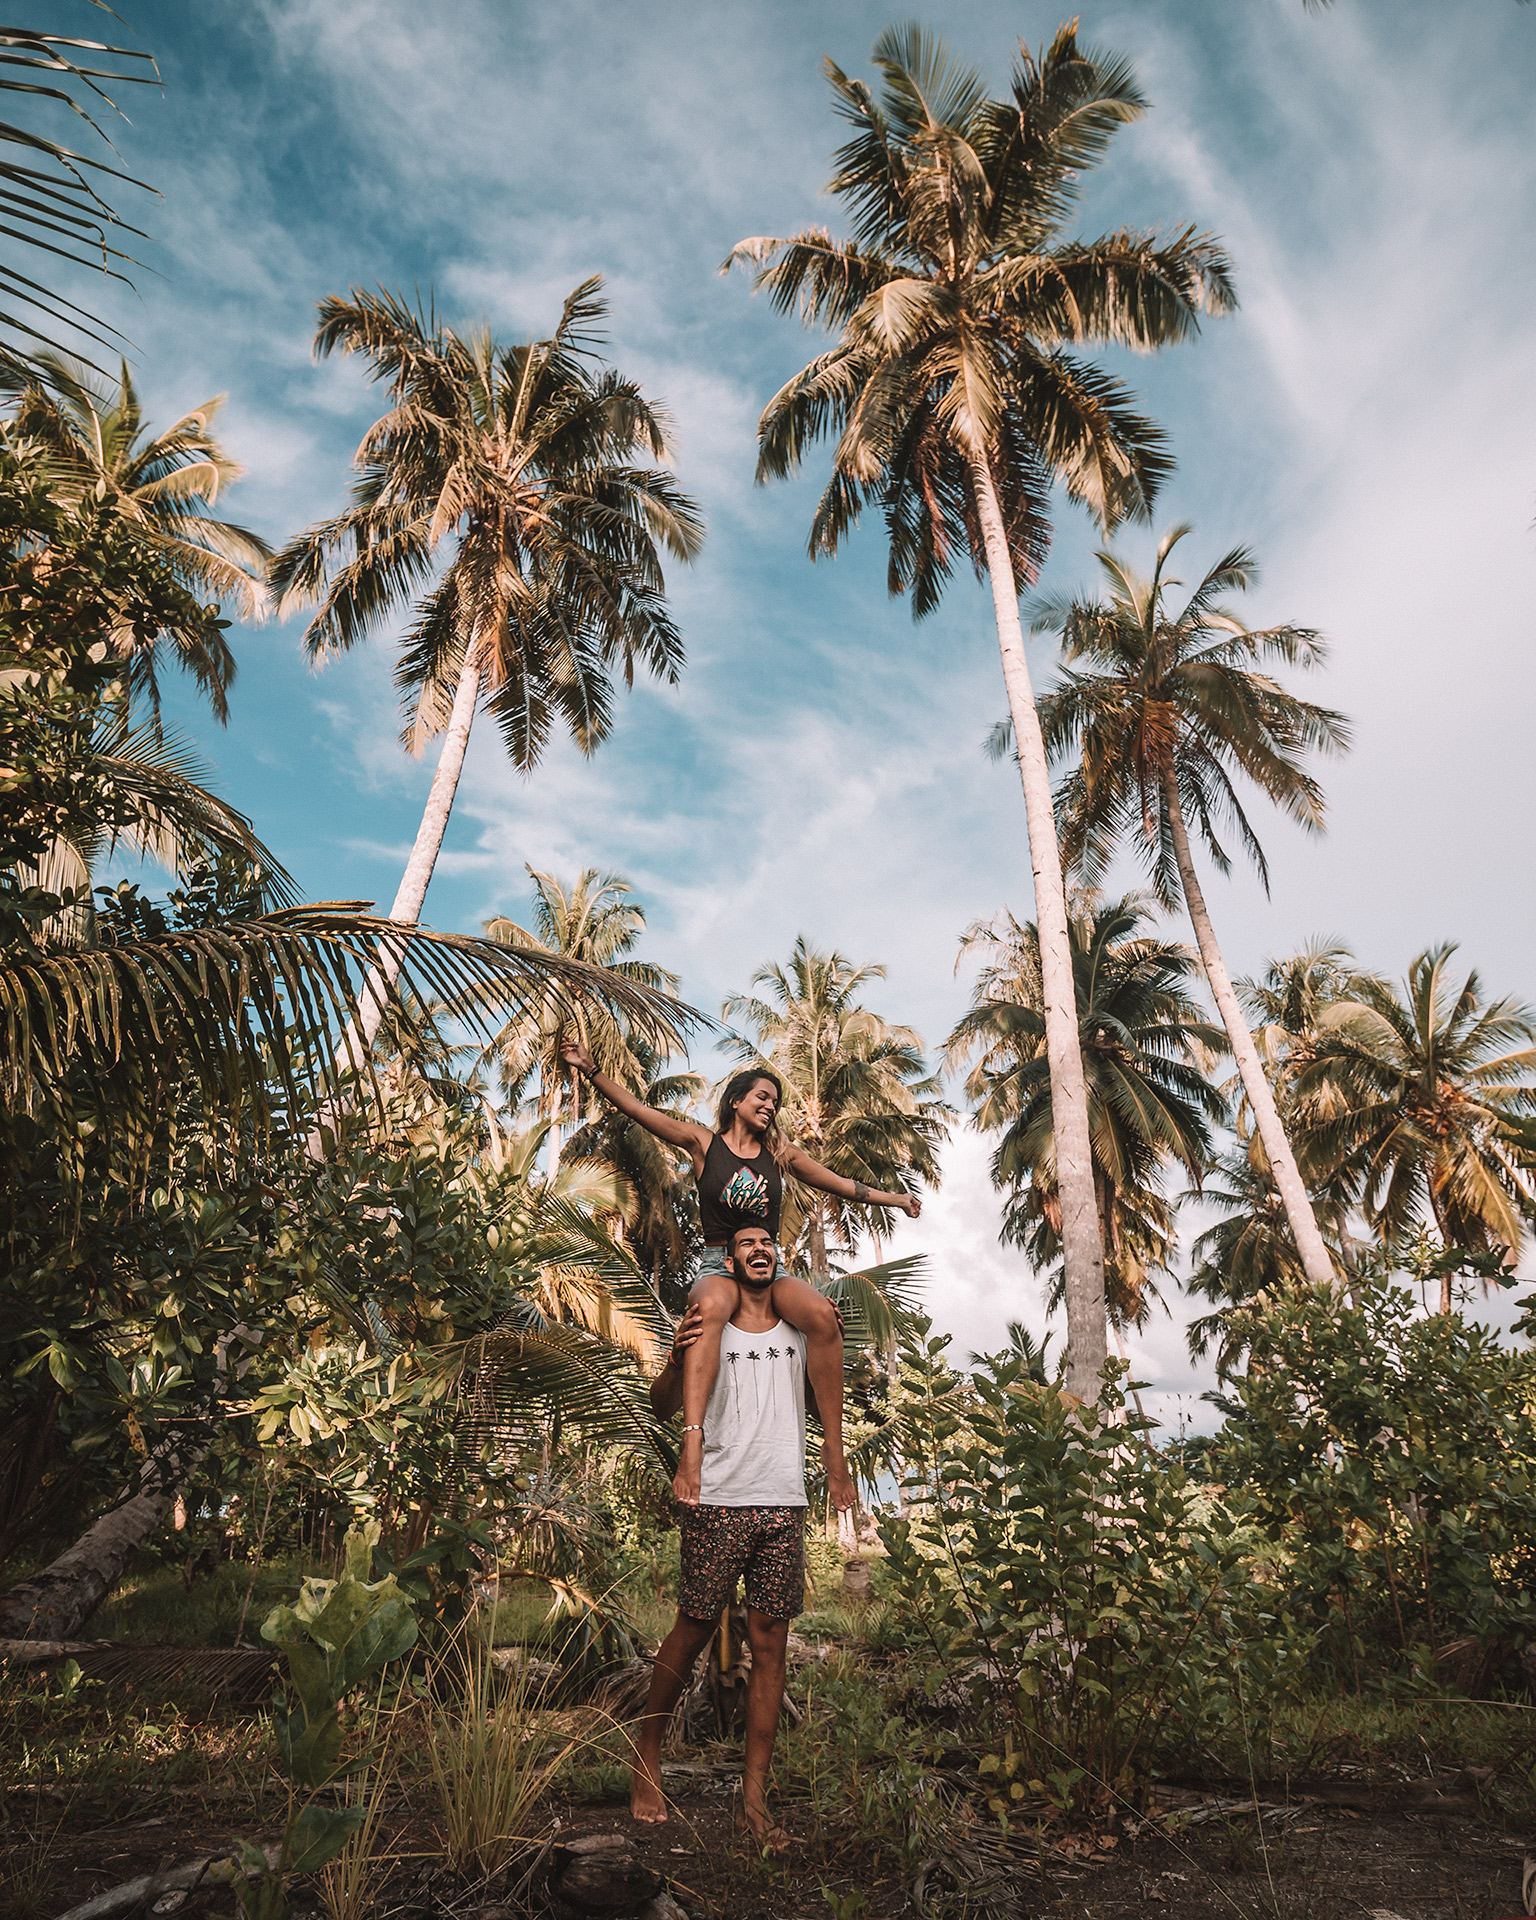 Love Bali tees freeoversea ethical clothing store Bali 1% for the planet palm tree vibes handmade in Bali Indonesia